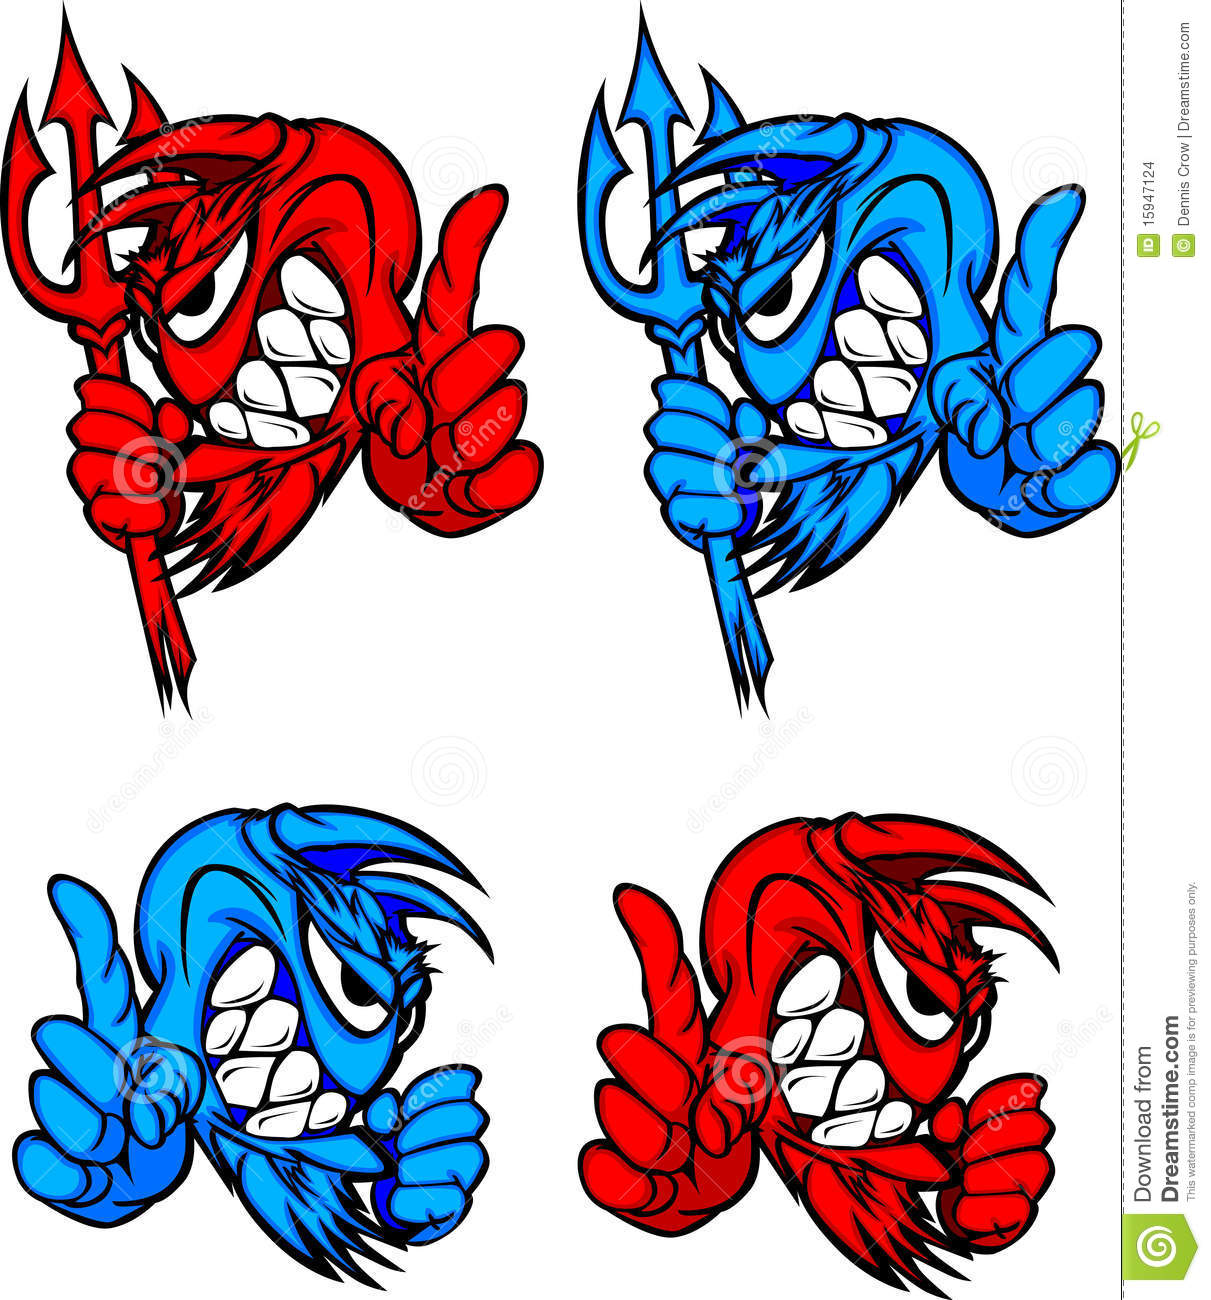 Demon Devil Mascot Vector Logos Stock Images - Image: 15947124